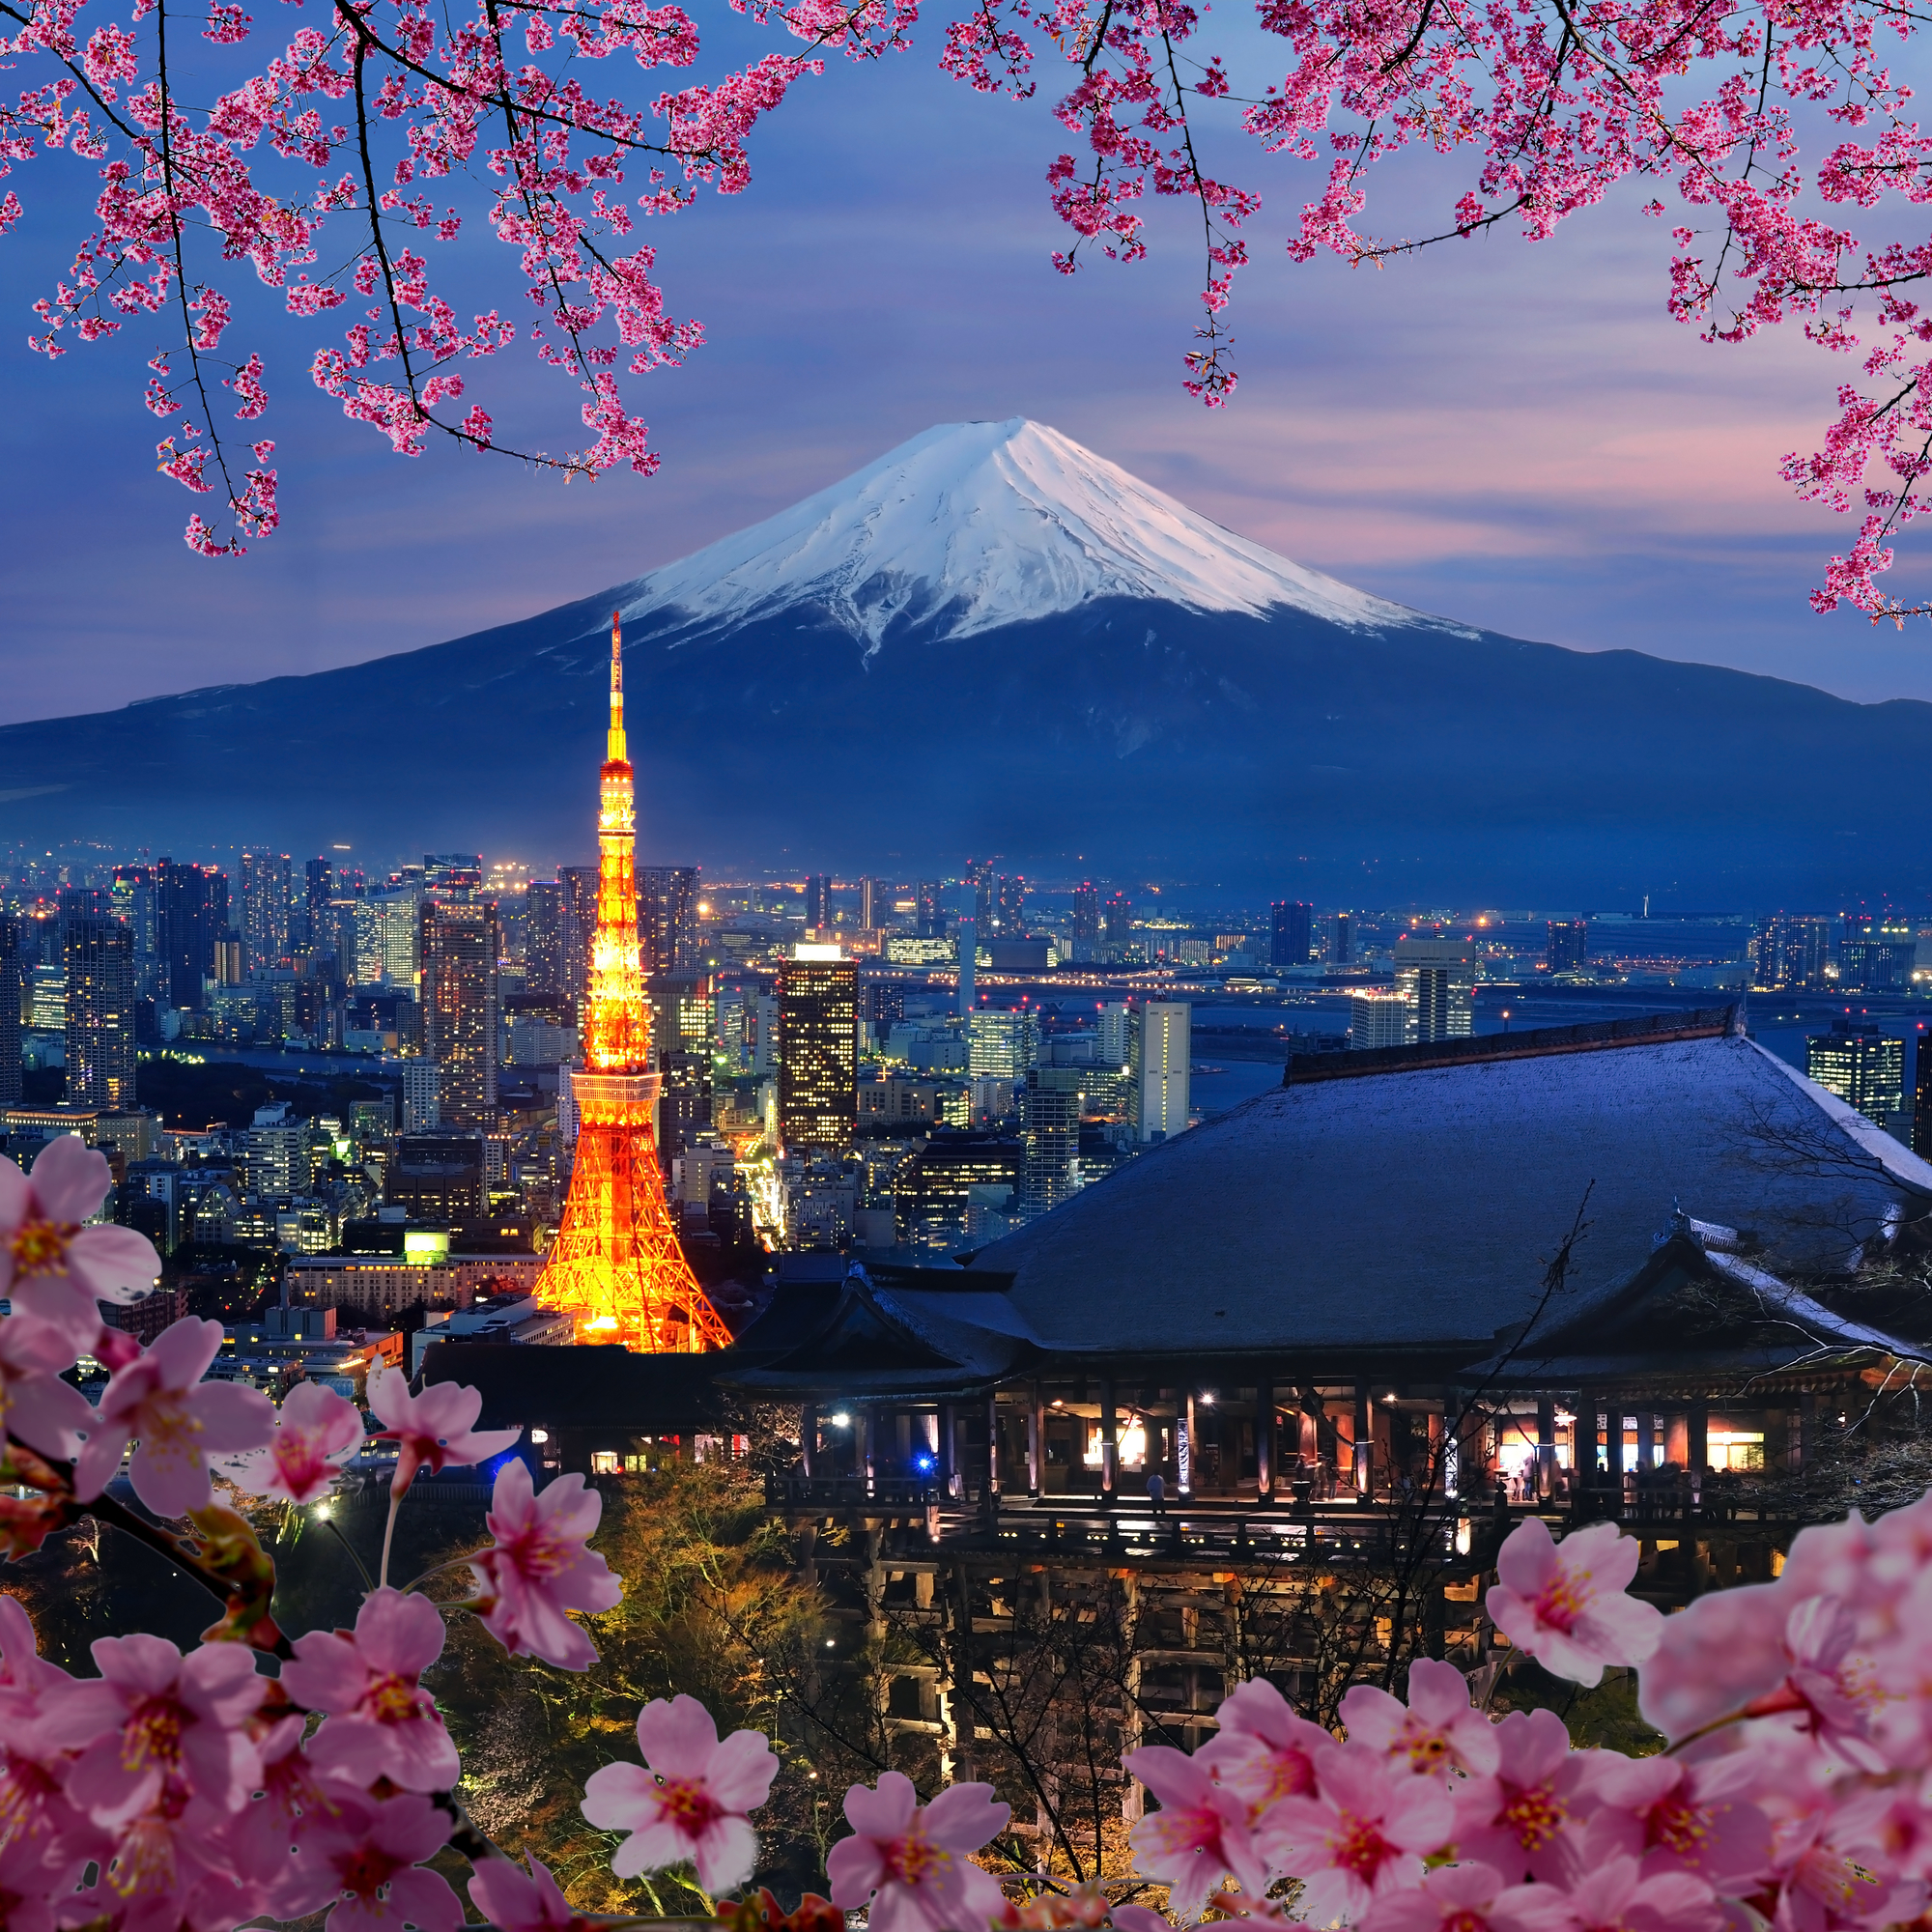 Mt. Fuji and Tokyo Tower in Japan